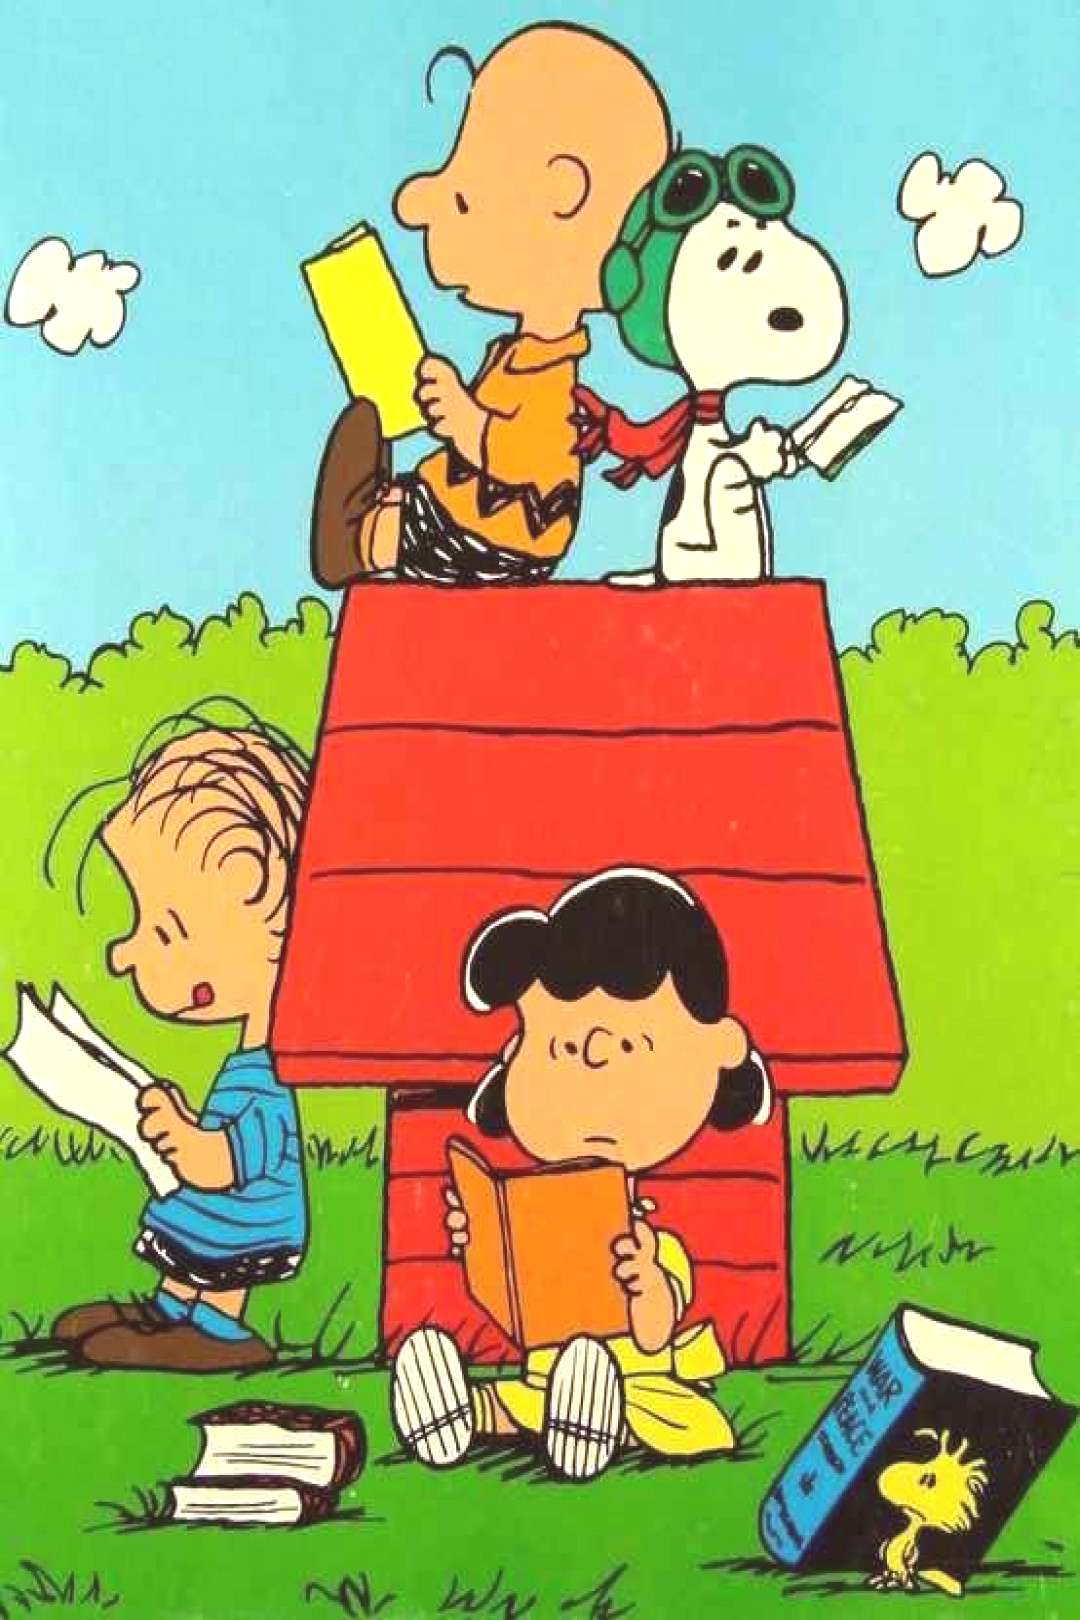 The Peanuts Gang catching up on their reading! ♡ See More pic... The Peanuts Gang catching up on